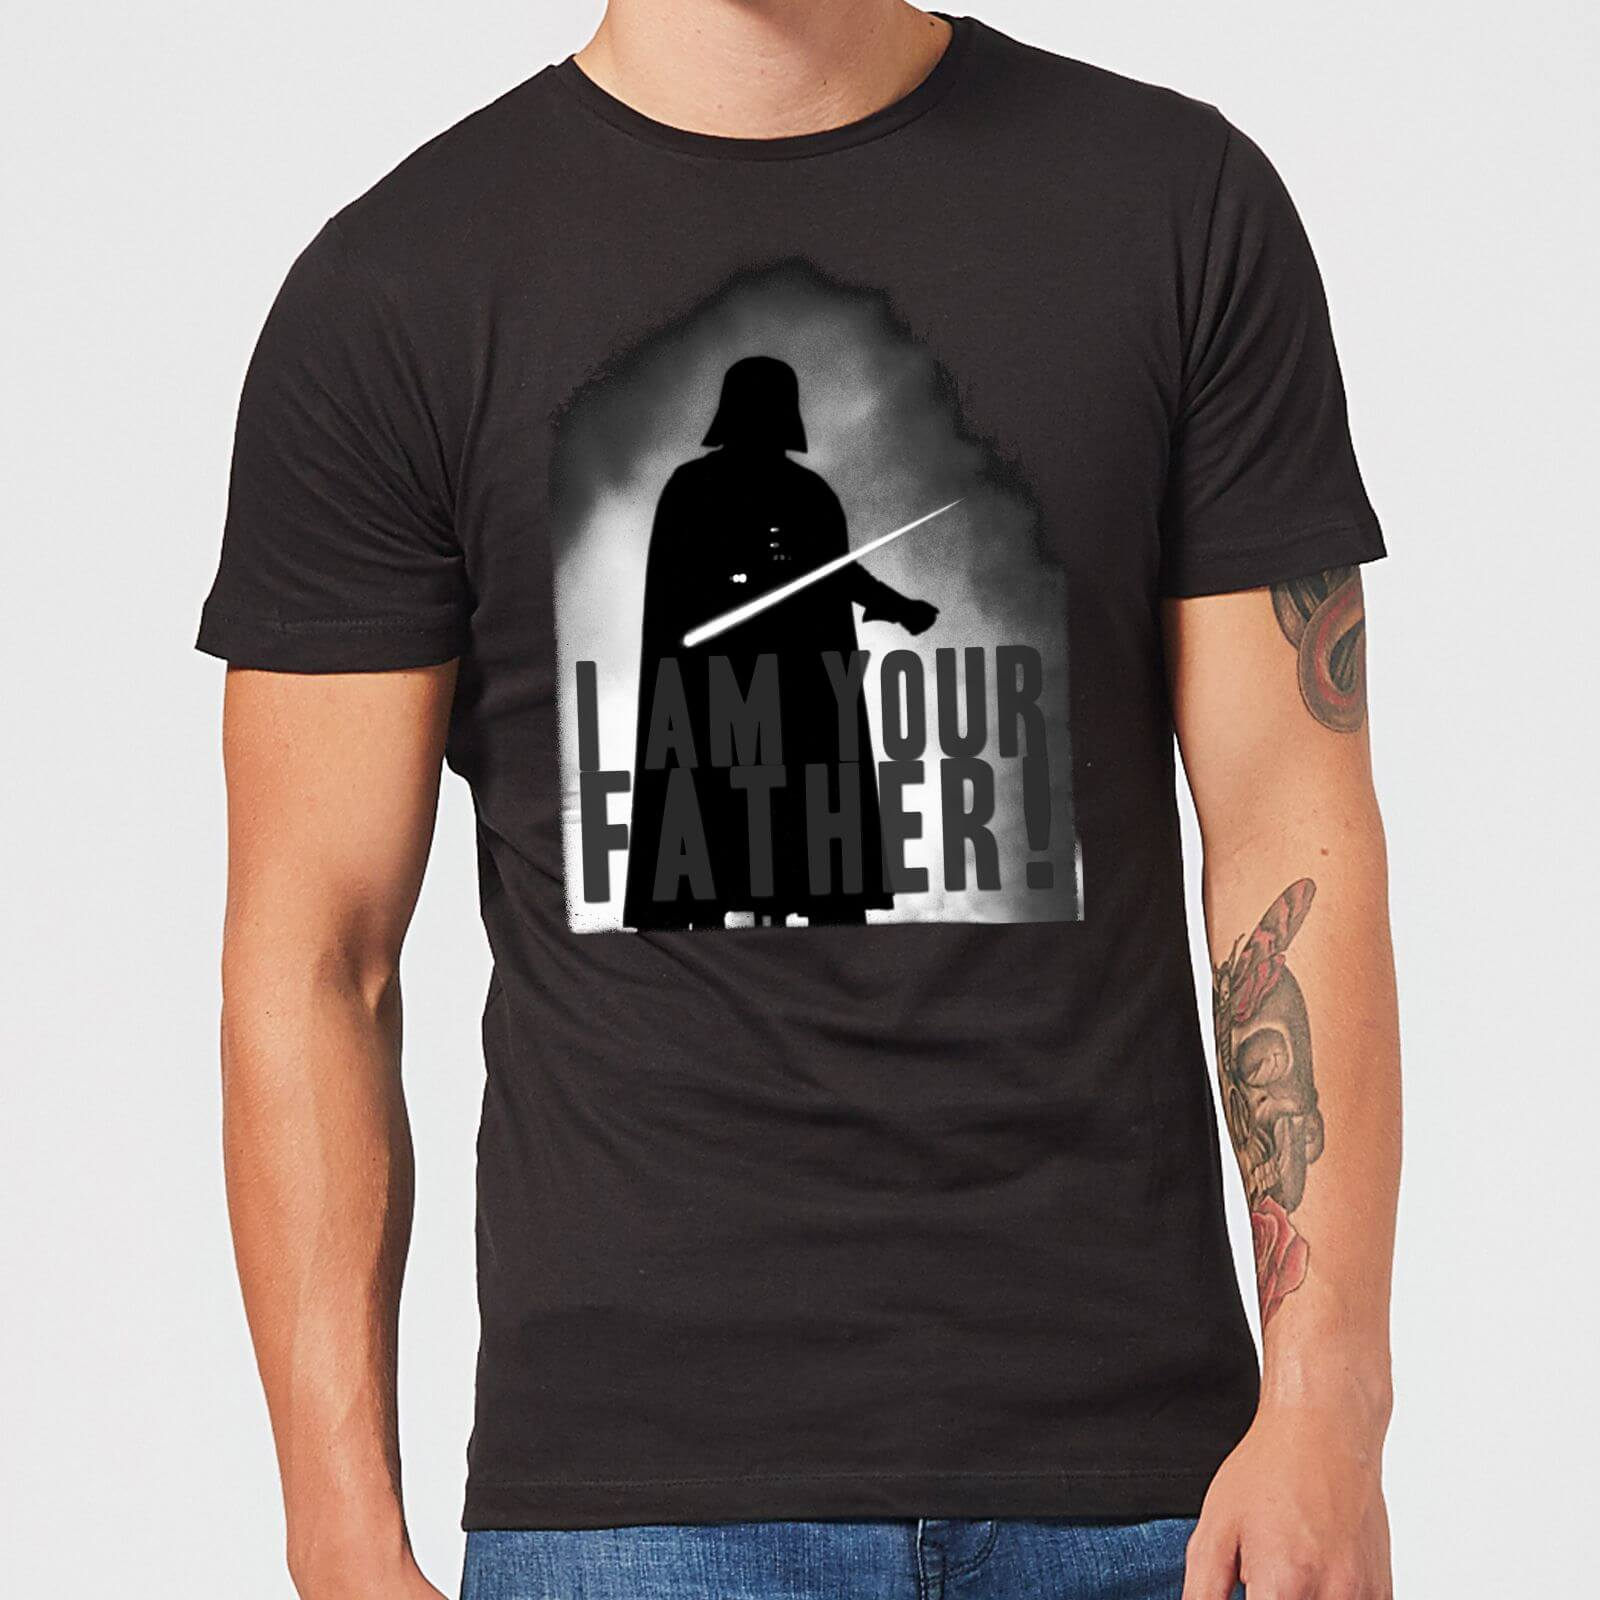 05c4e80a Star Wars Darth Vader I Am Your Father Silhouette Men's T-Shirt - Black  Clothing | Zavvi